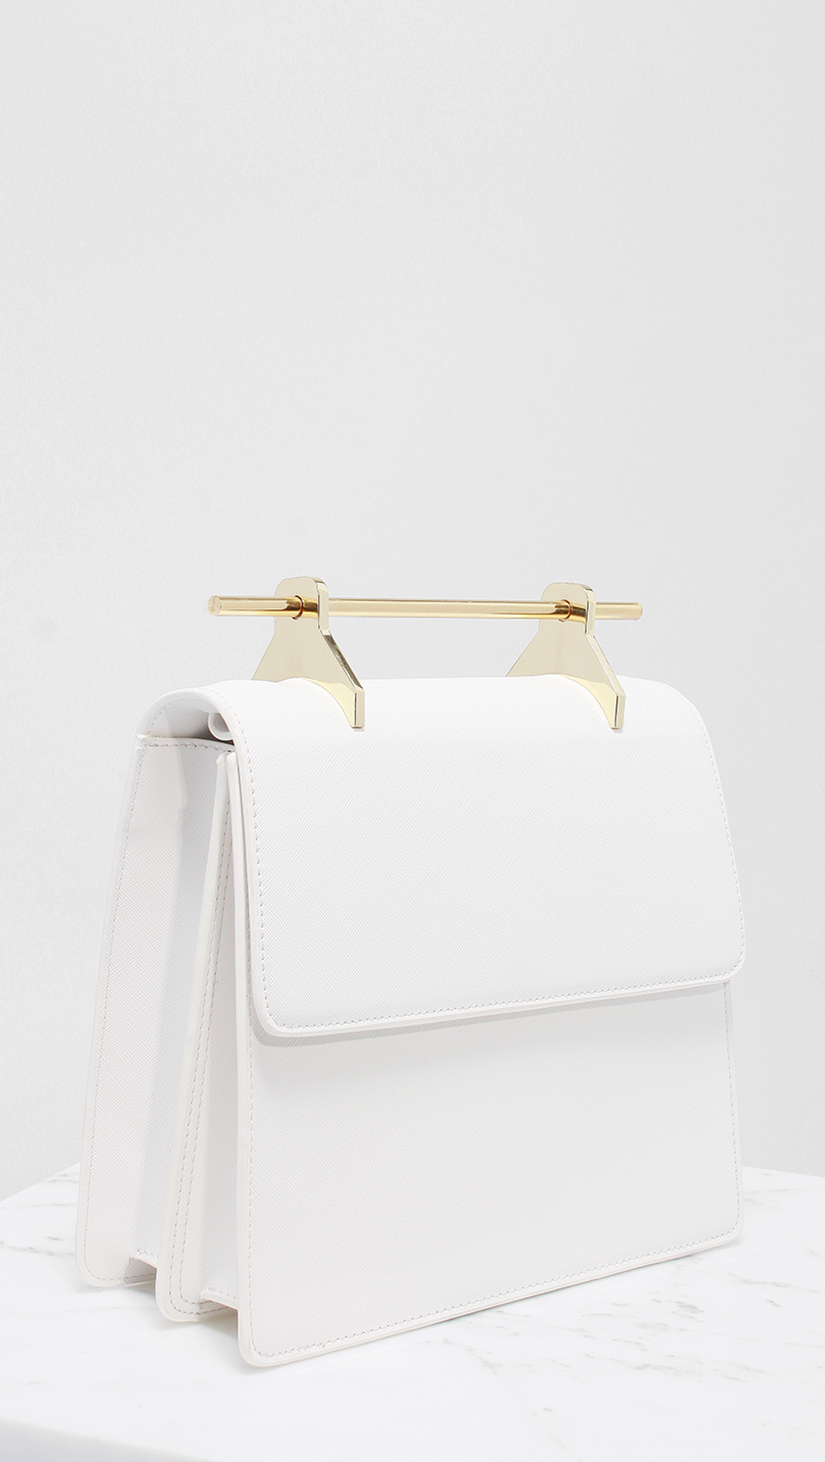 gold_needle_bag_4.png